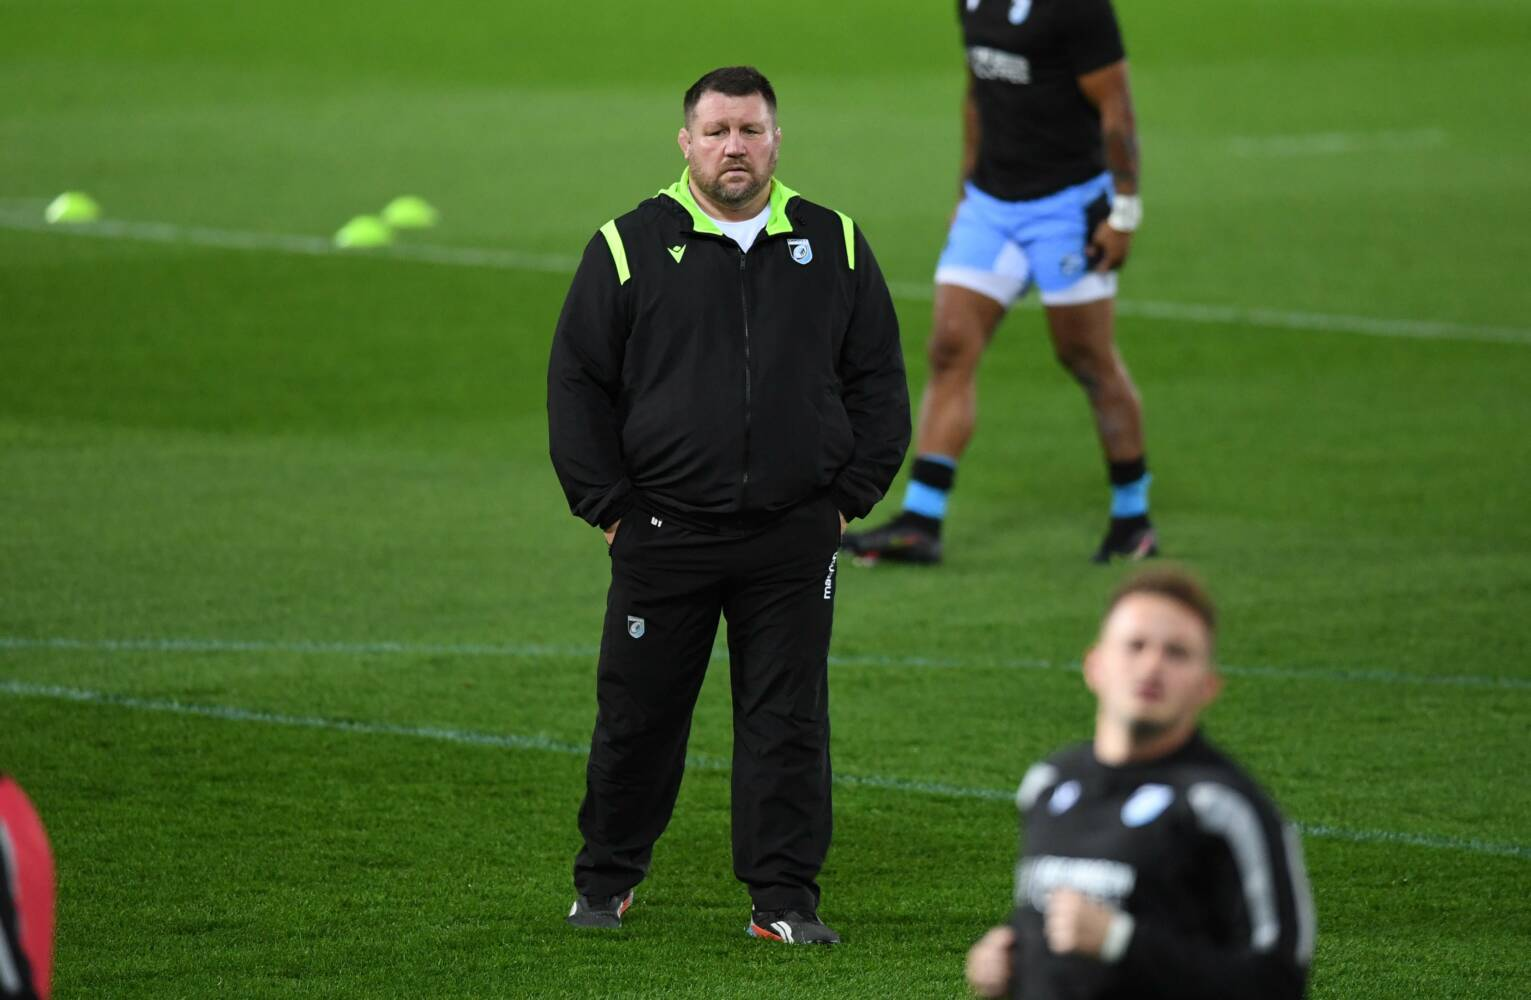 Bulls defeat will stand Cardiff in good stead for Sharks test, says Young